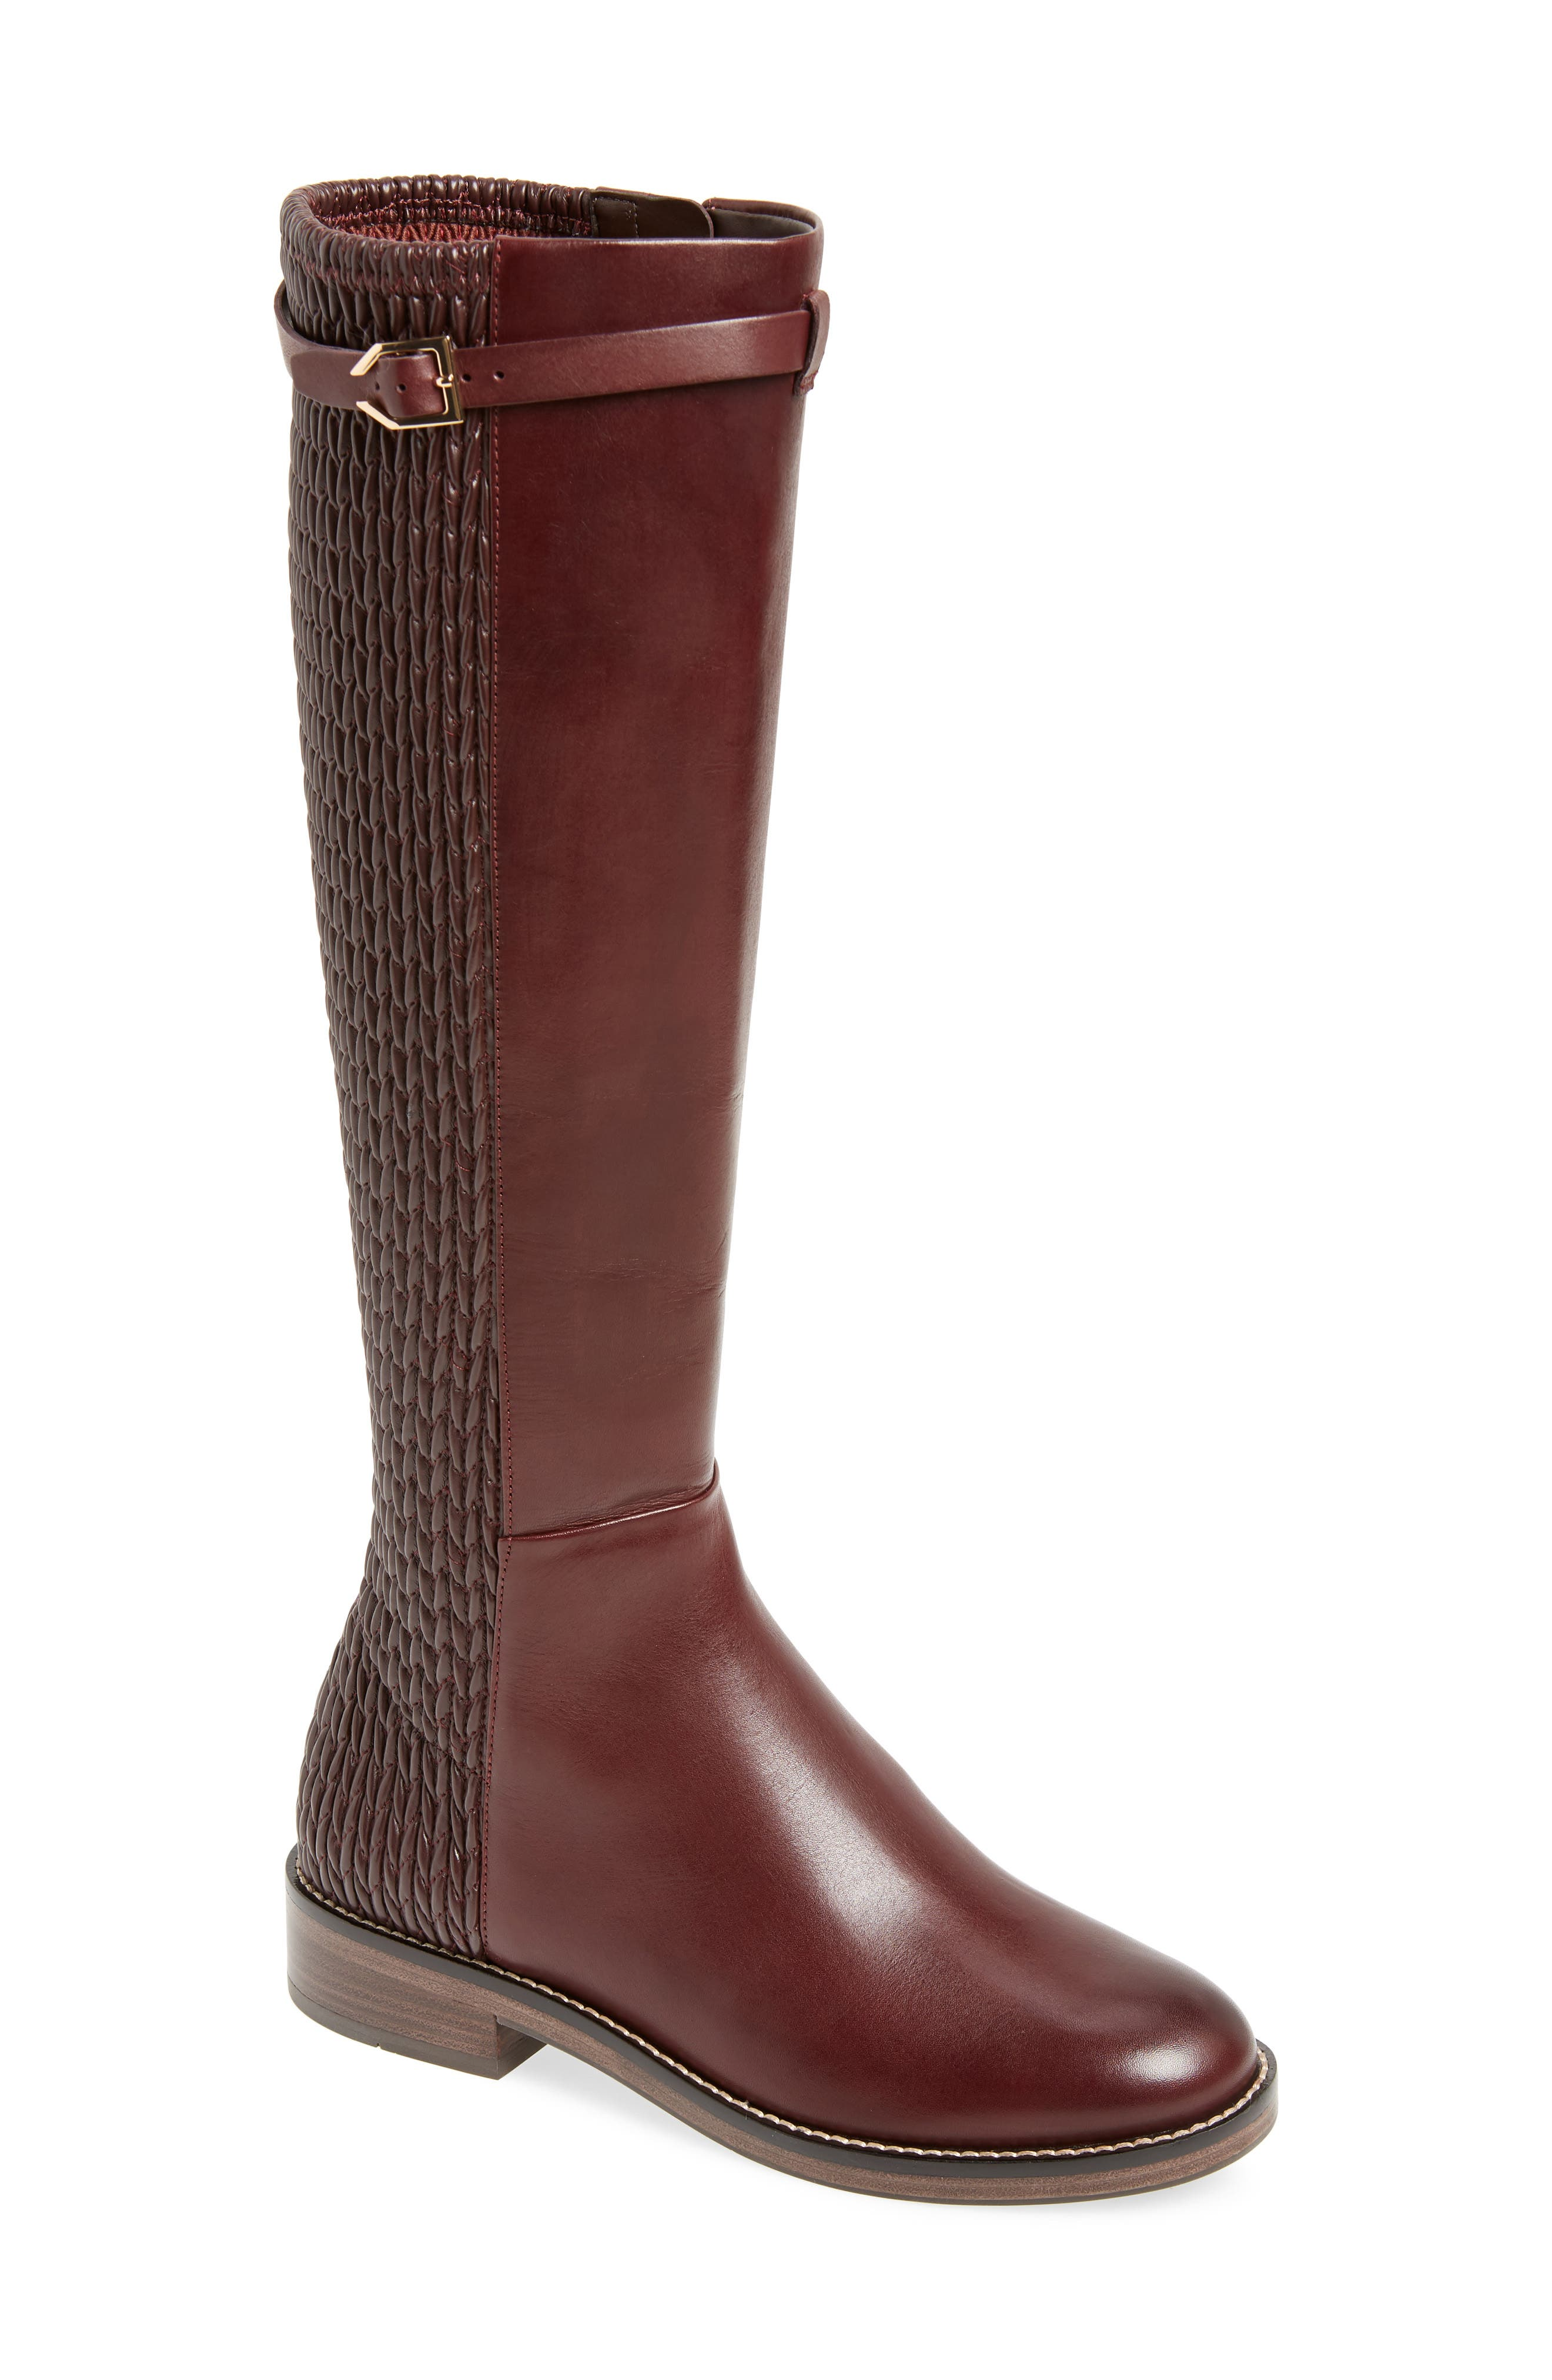 COLE HAAN, Lexi Grand Knee High Stretch Boot, Main thumbnail 1, color, CORDOVAN LEATHER